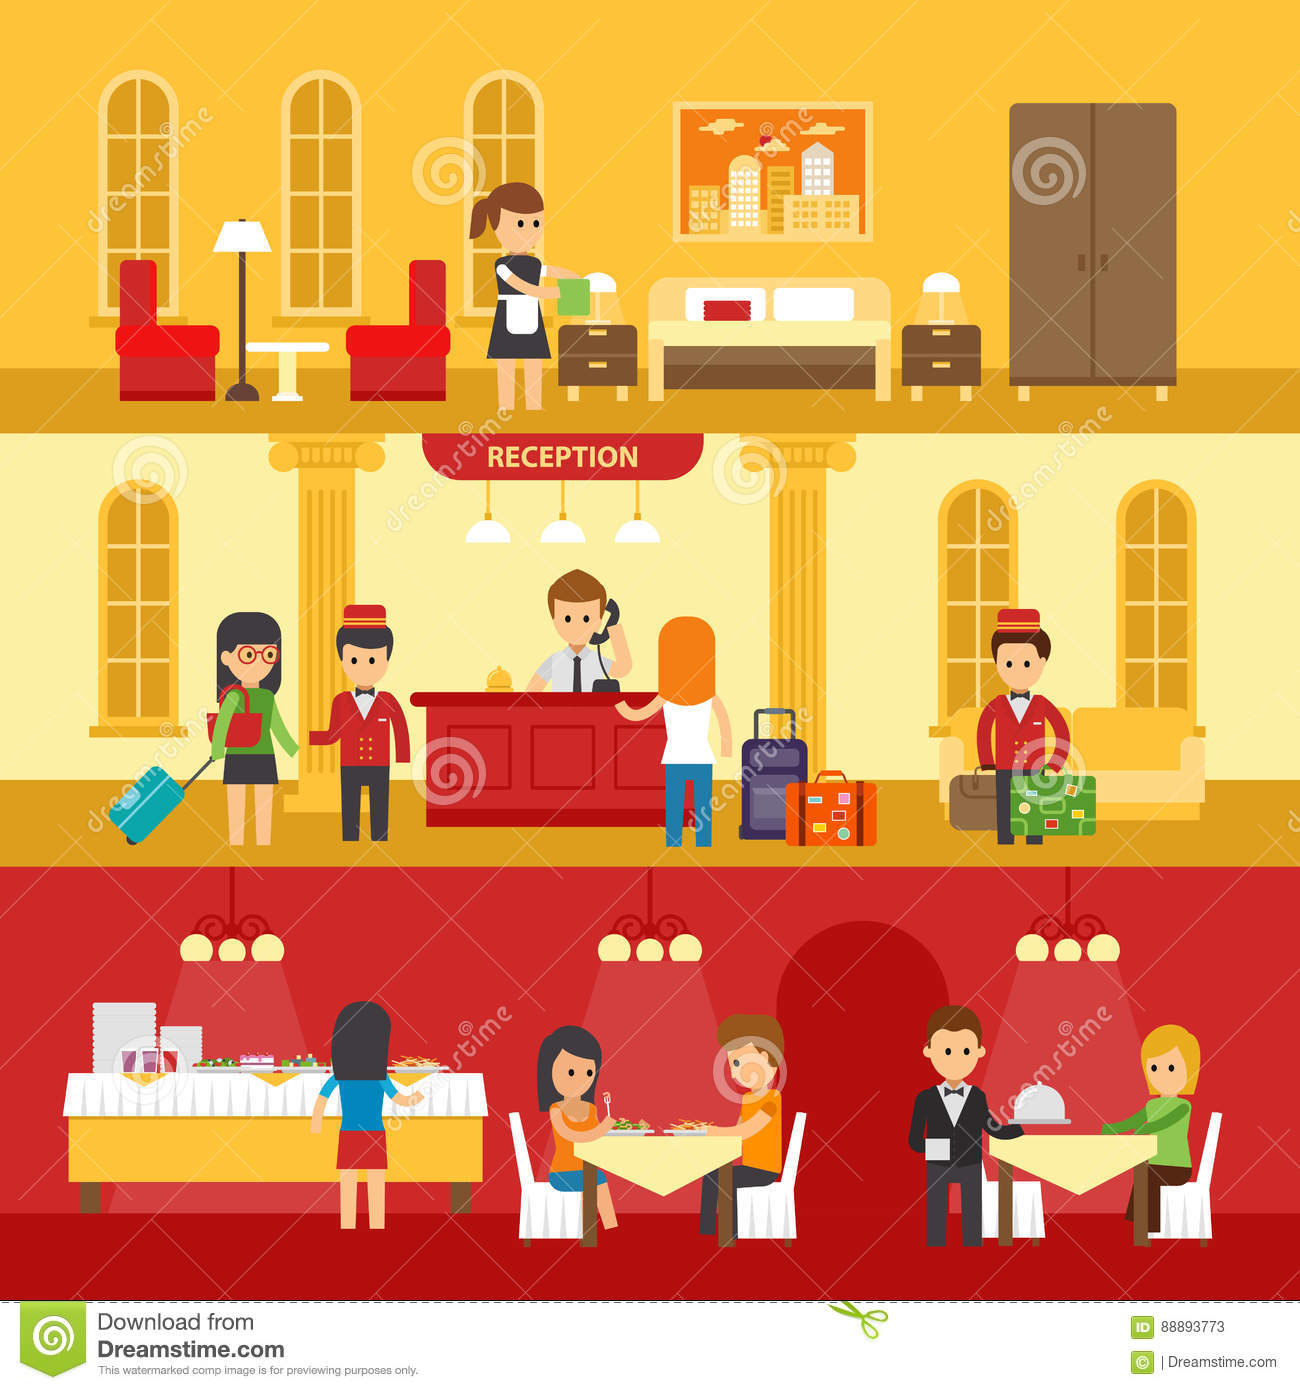 Reception cartoons illustrations vector stock images for Room design vector